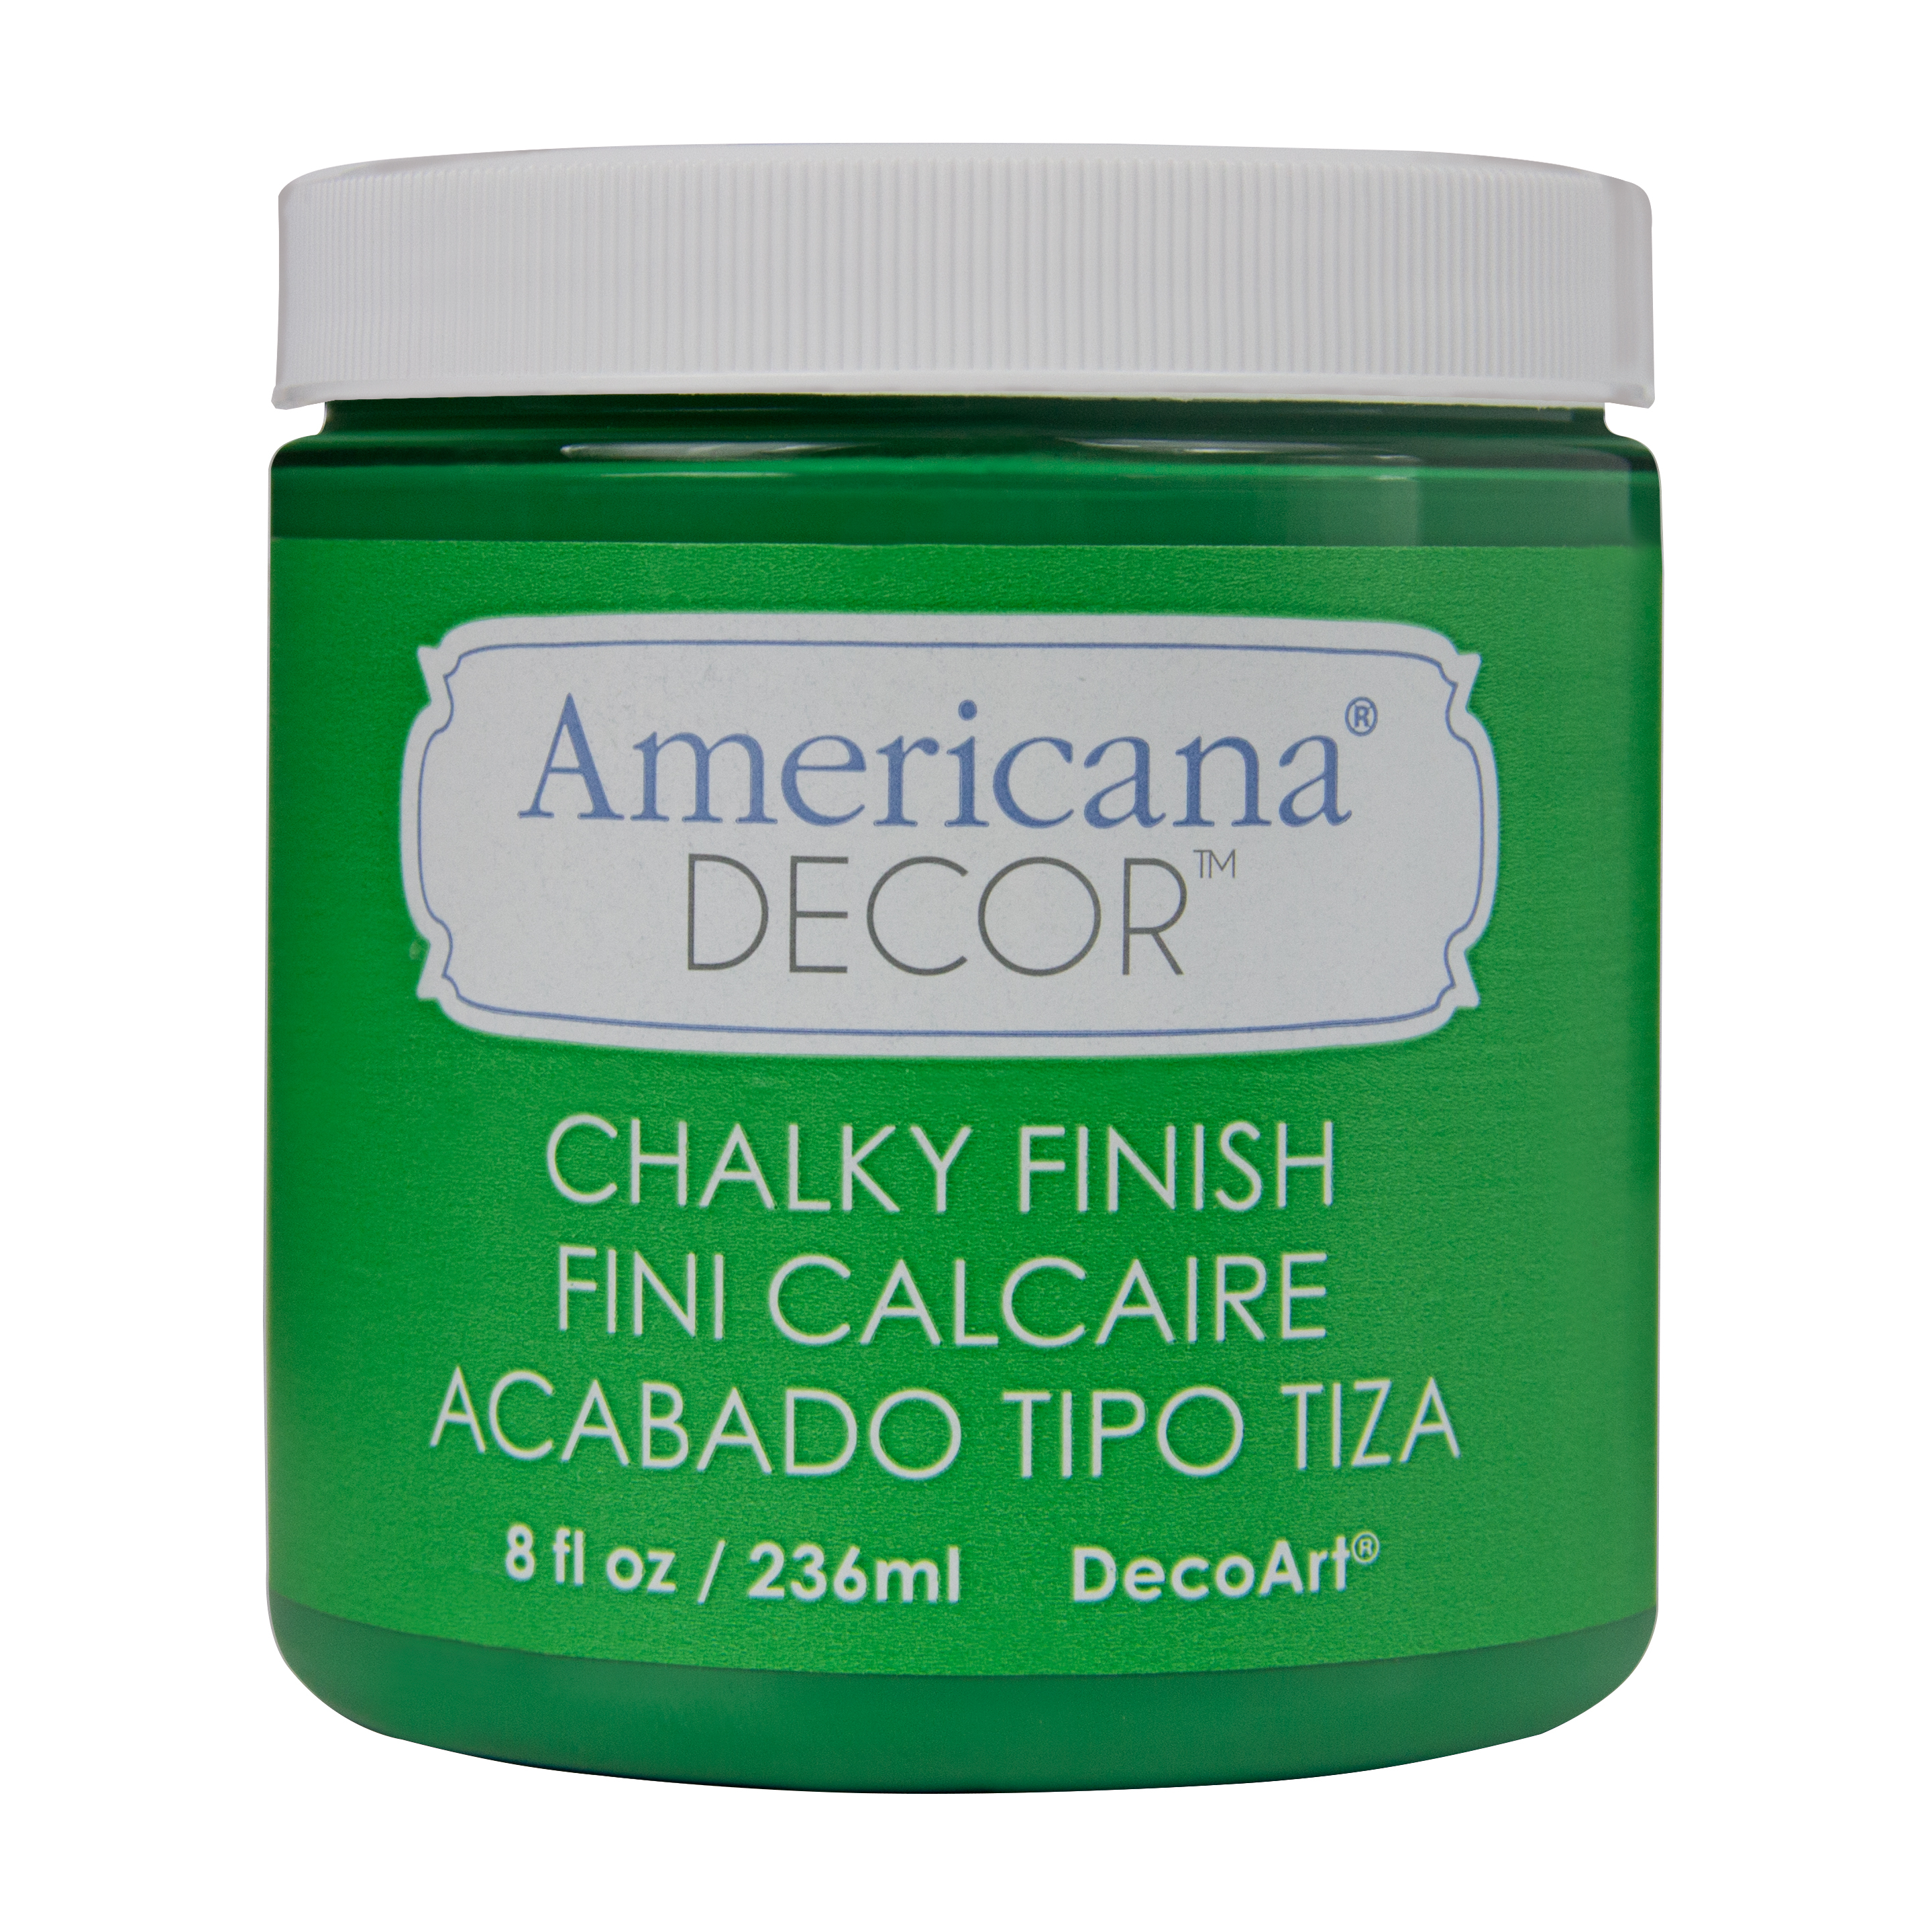 FORTUNE CHALKY FINISH 236ml AMERICANA DECOR